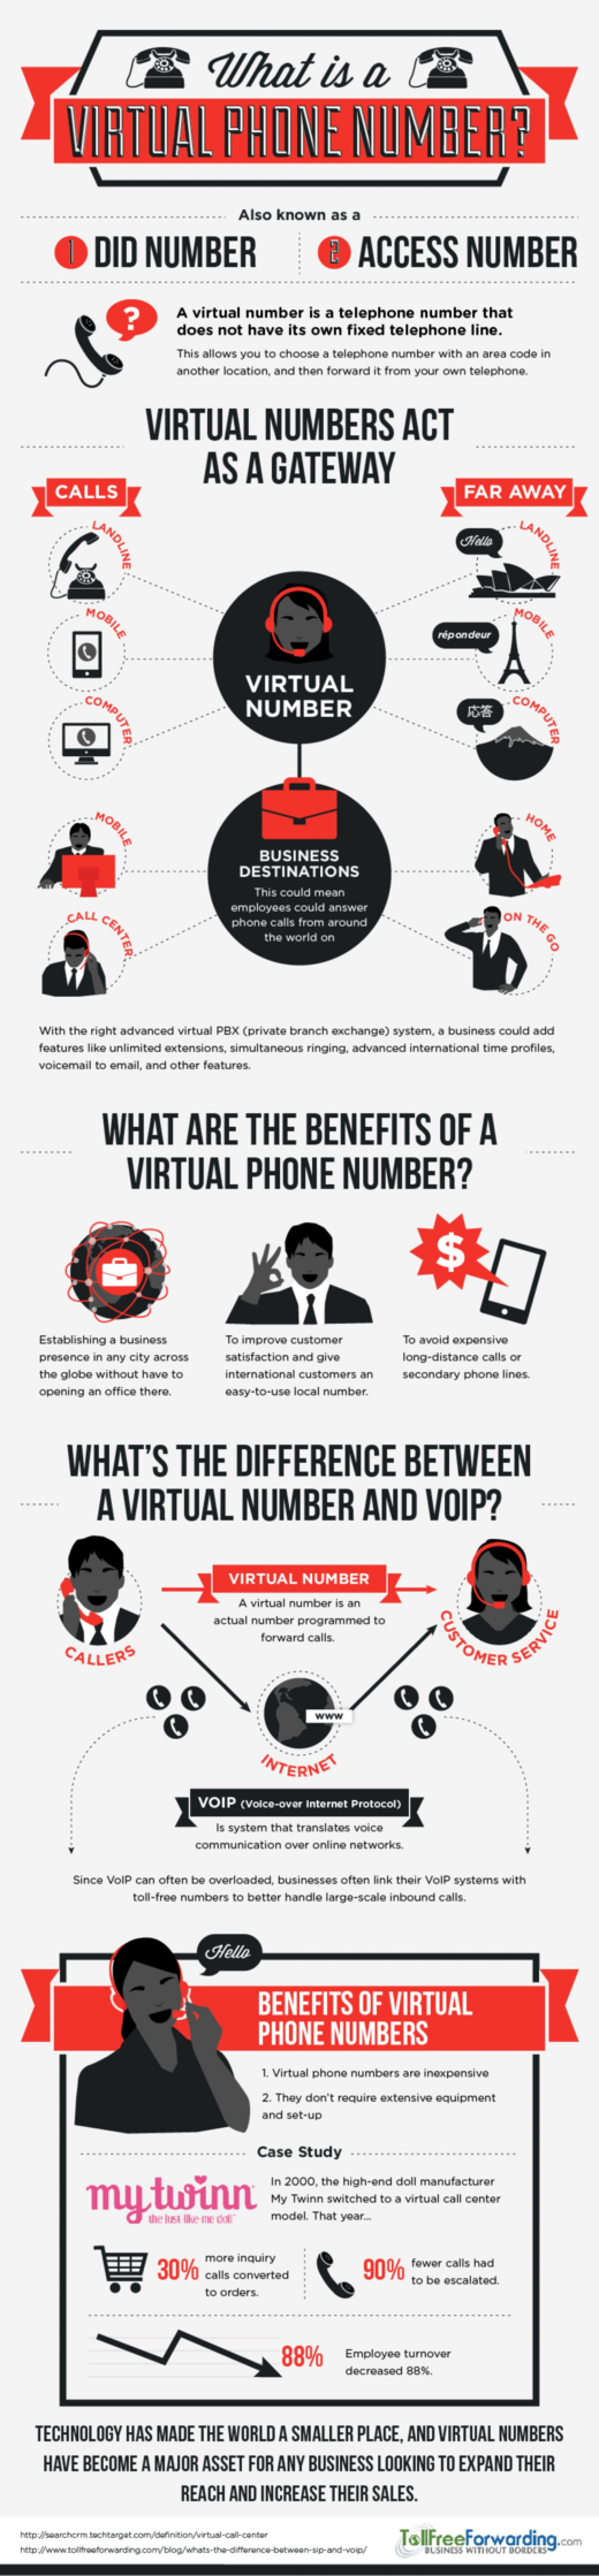 What Is a Virtual Phone Number?